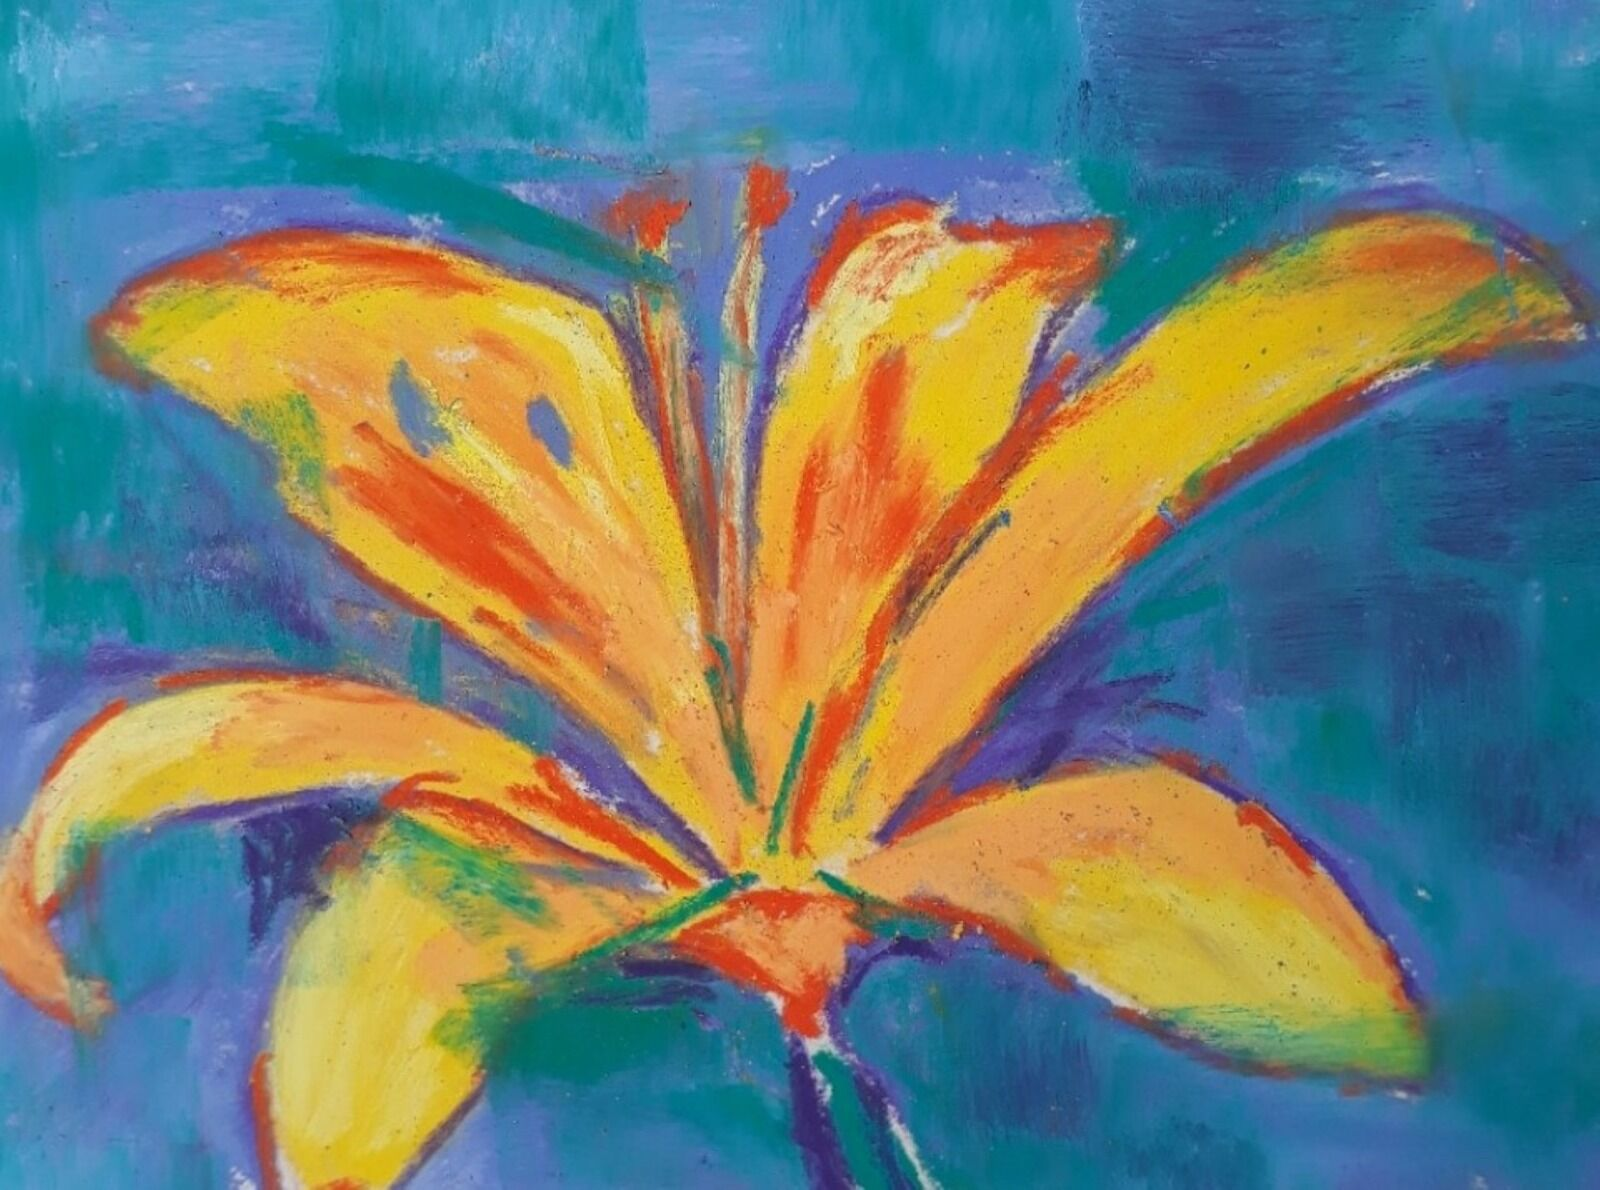 Yellow lily - abstract